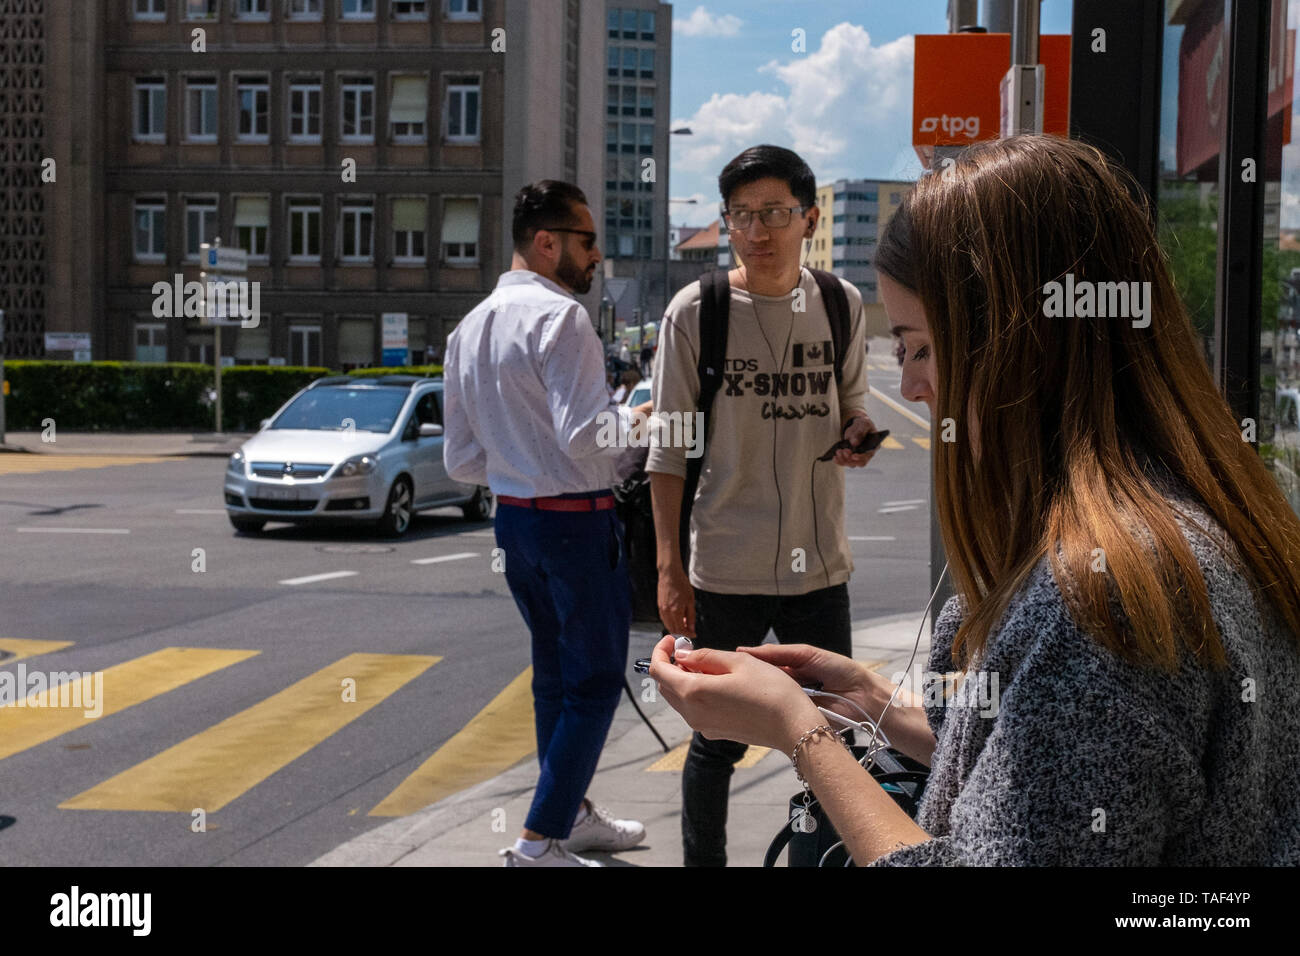 Connected Bus Stock Photos & Connected Bus Stock Images - Alamy